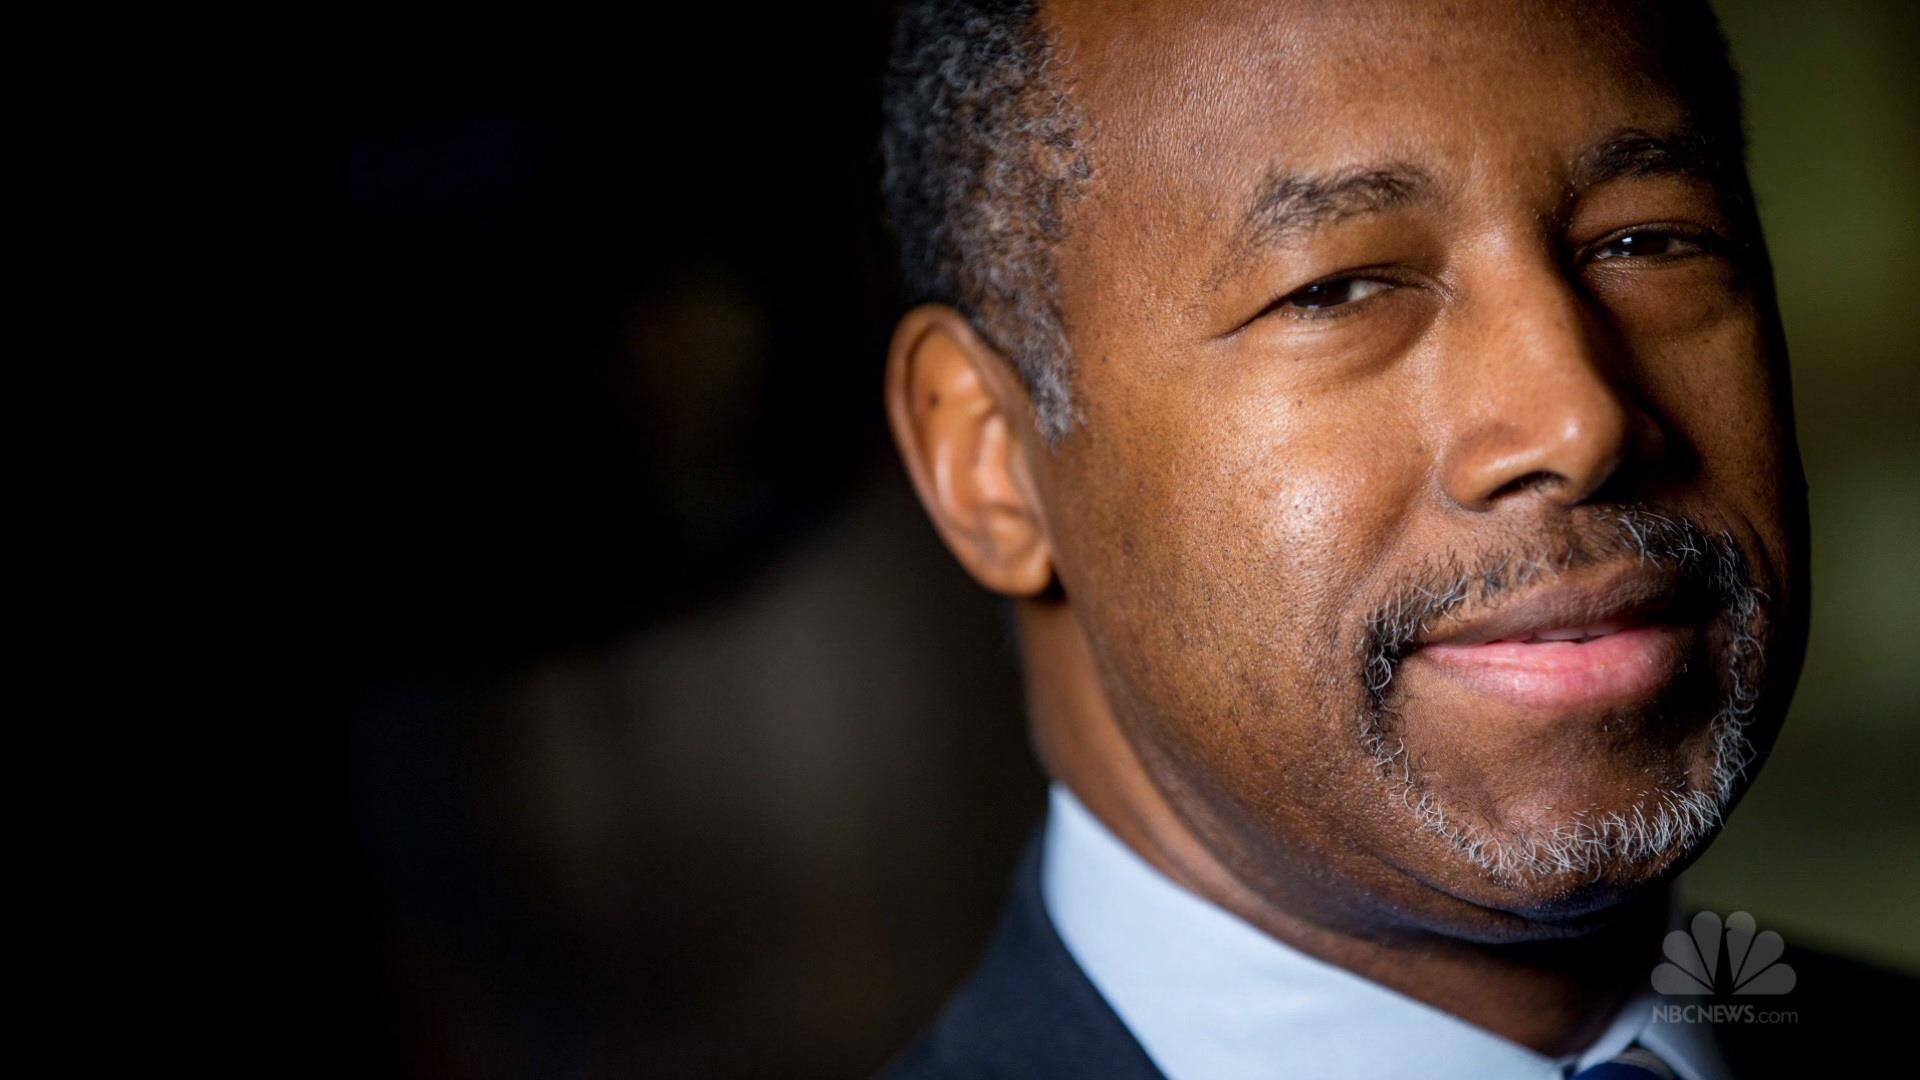 A look back at Ben Carson's highs and lows